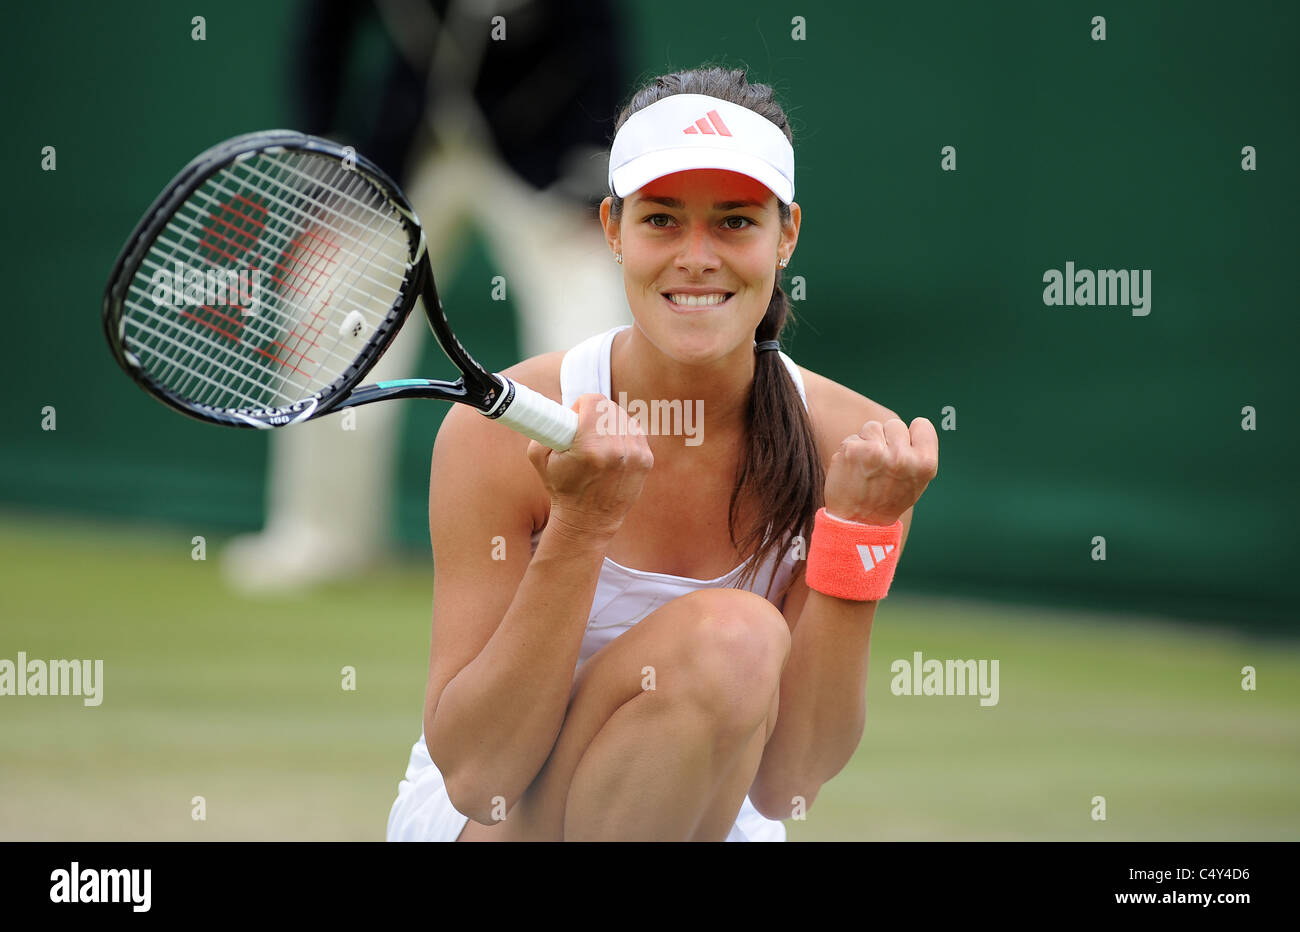 Ana Ivanovic High Resolution Stock Photography And Images Alamy